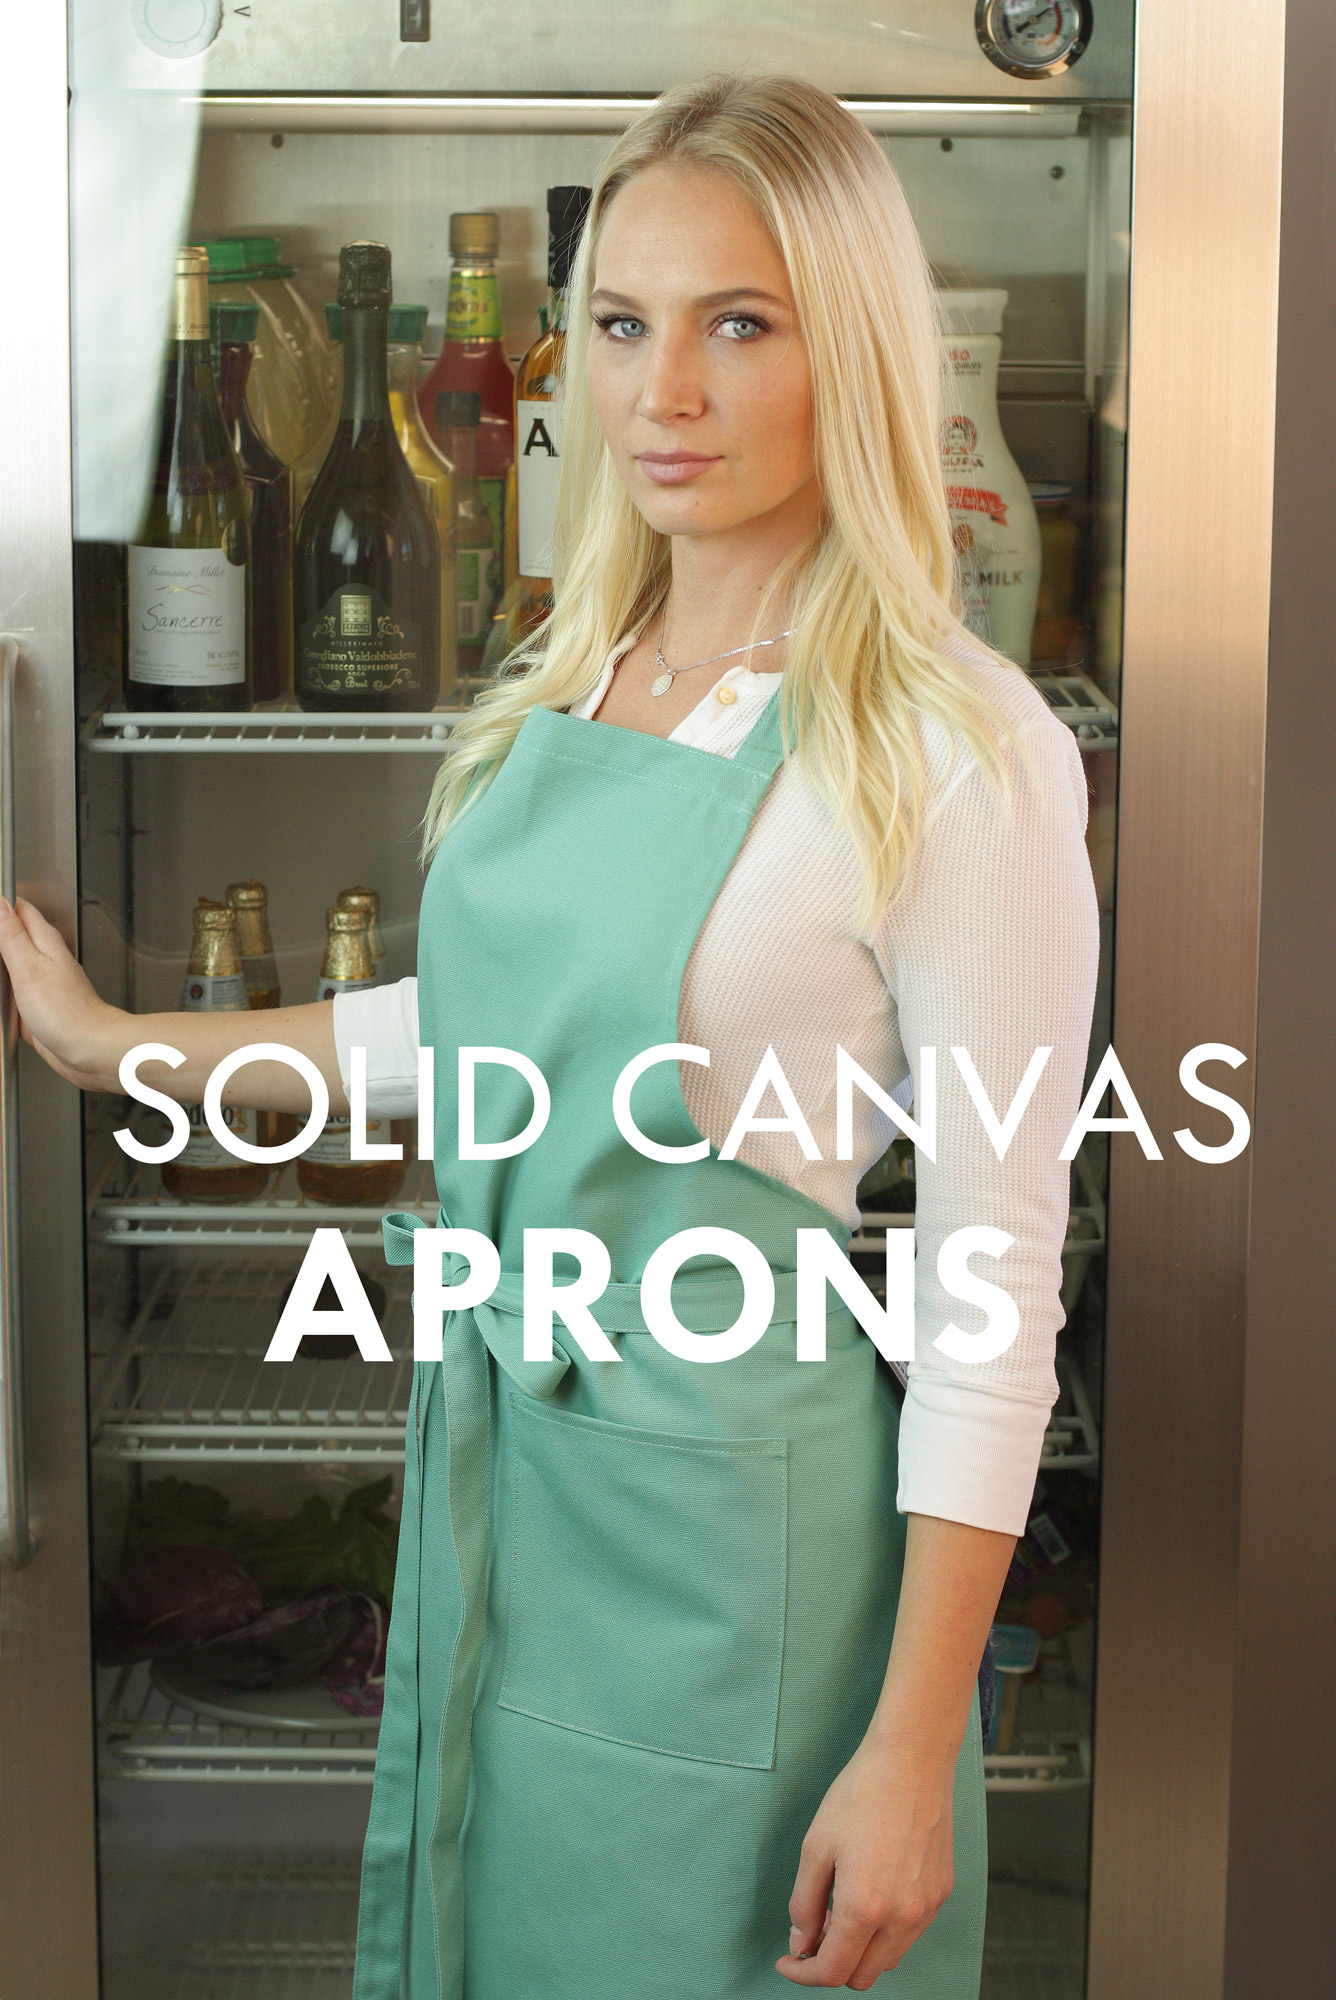 solid canvas aprons